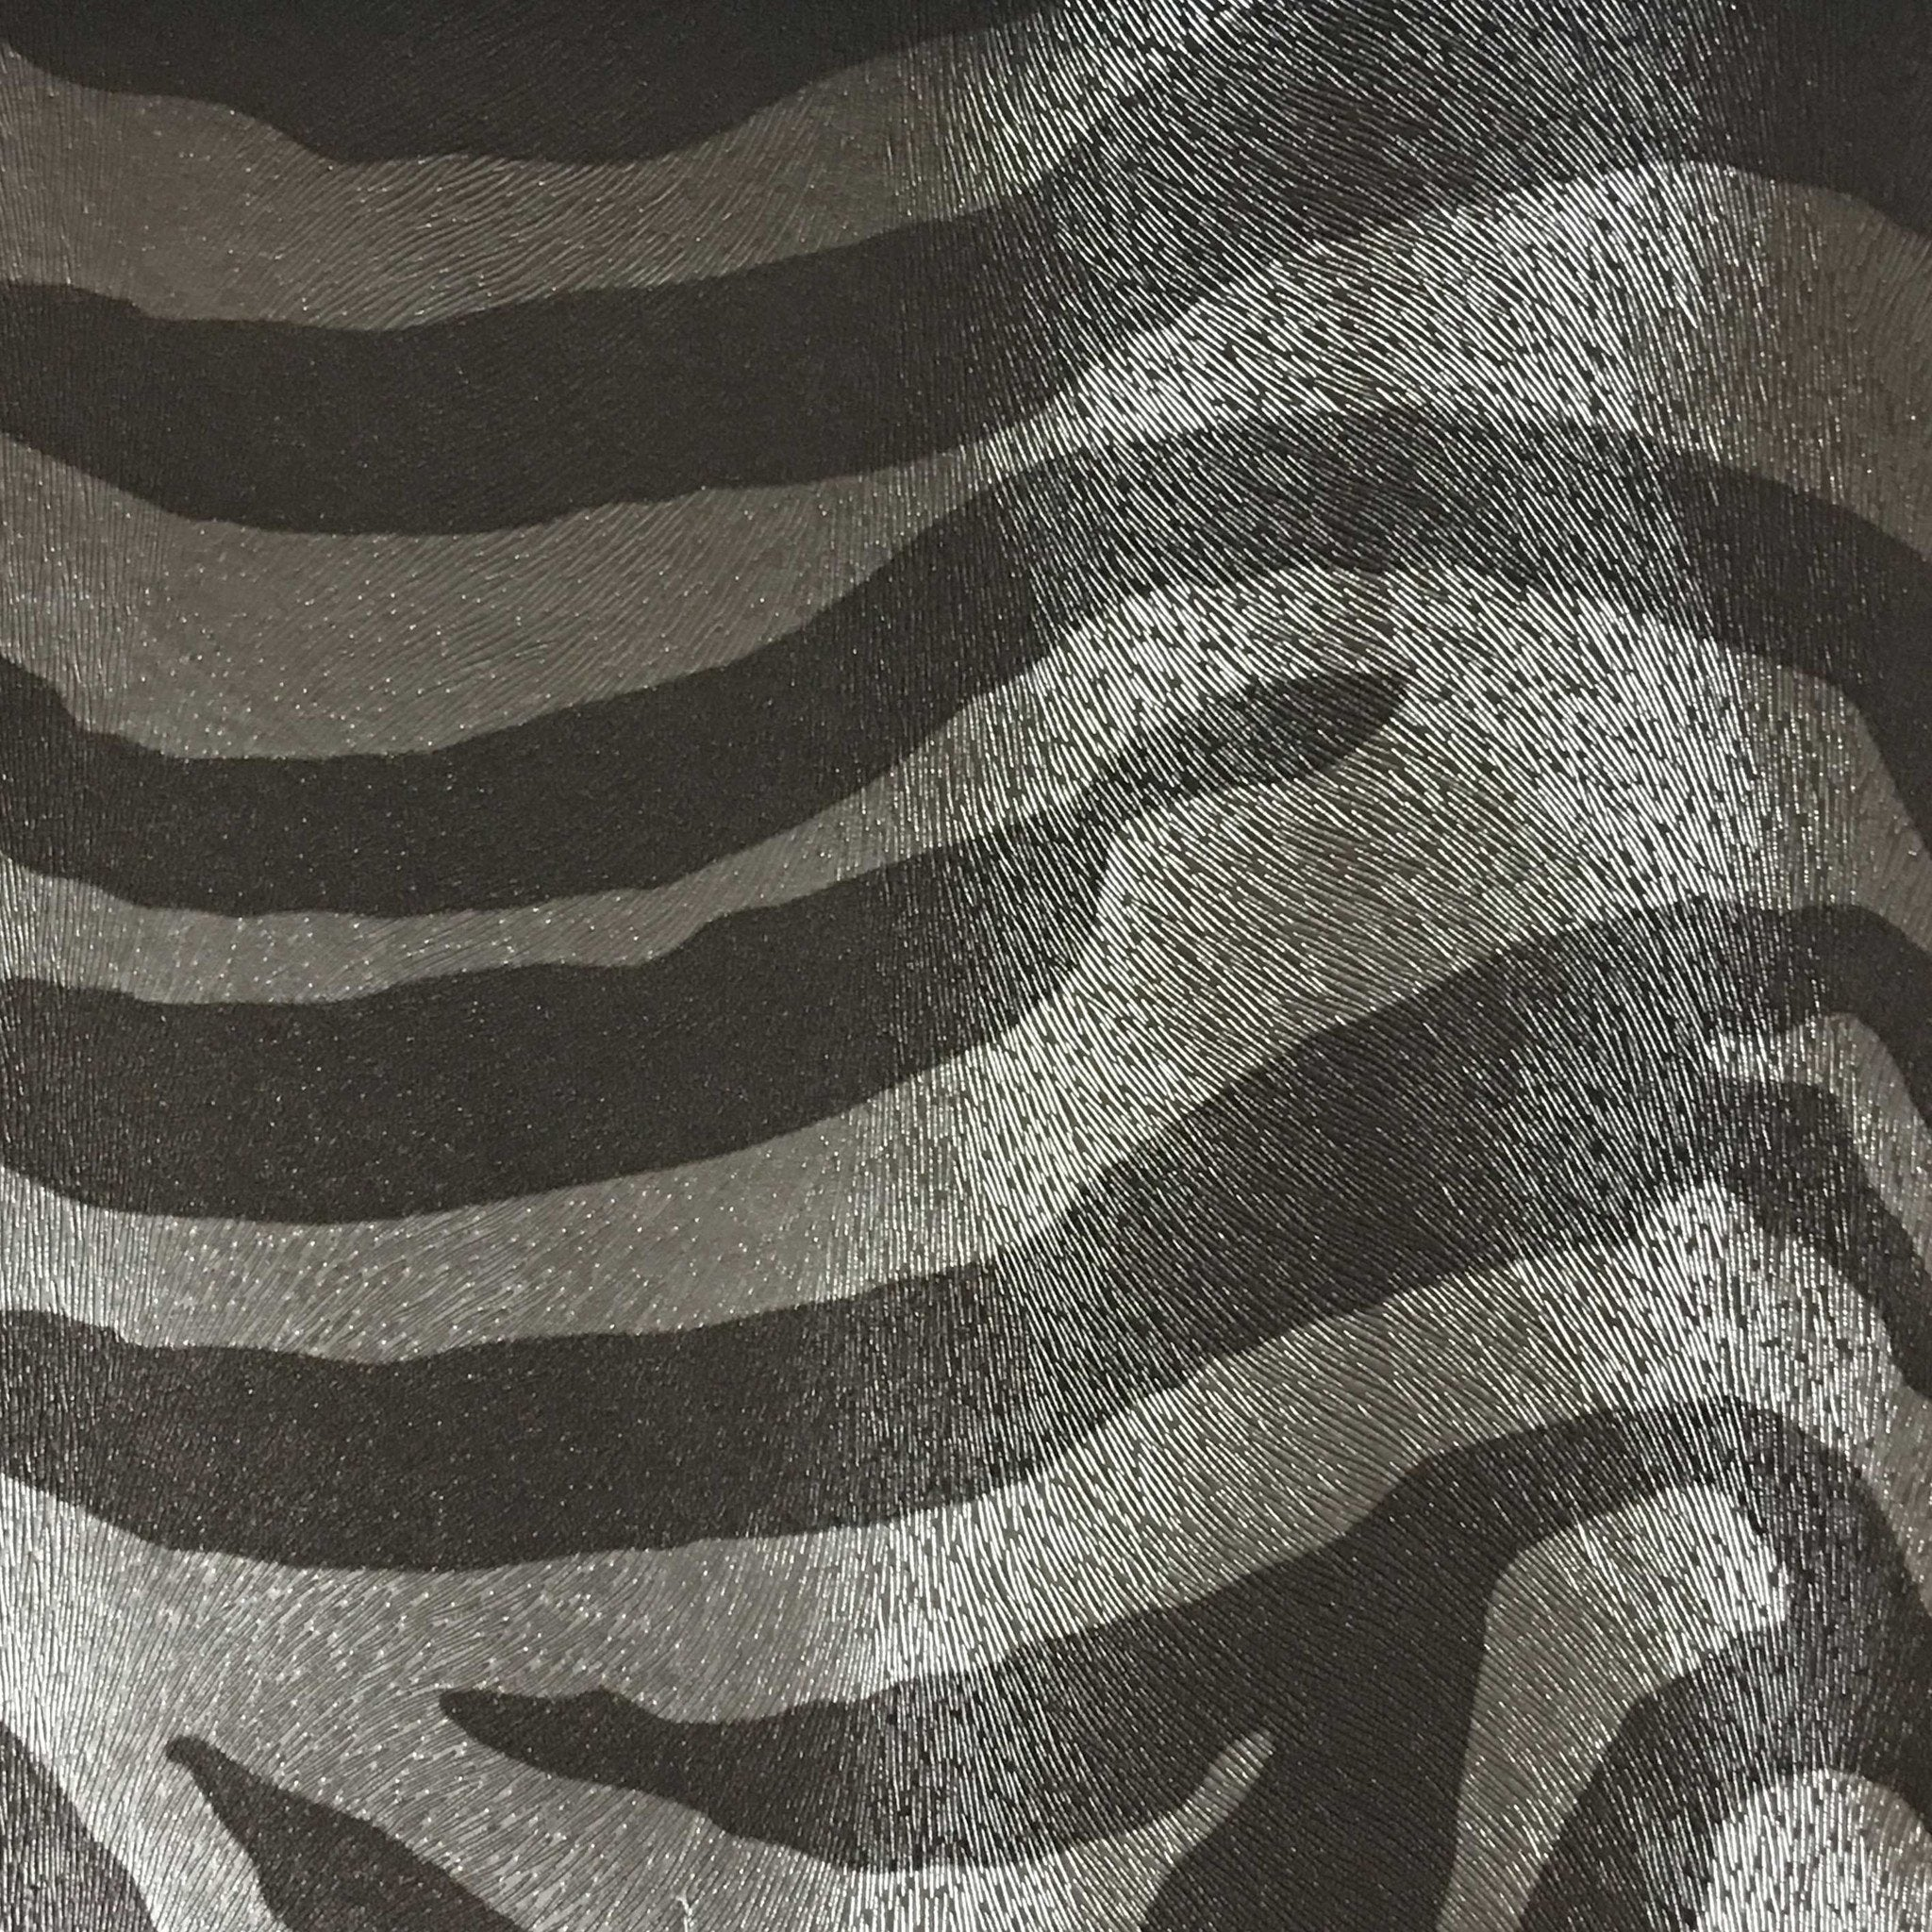 Chester Zebra Print Vinyl Faux Leather Upholstery Fabric By The Yard